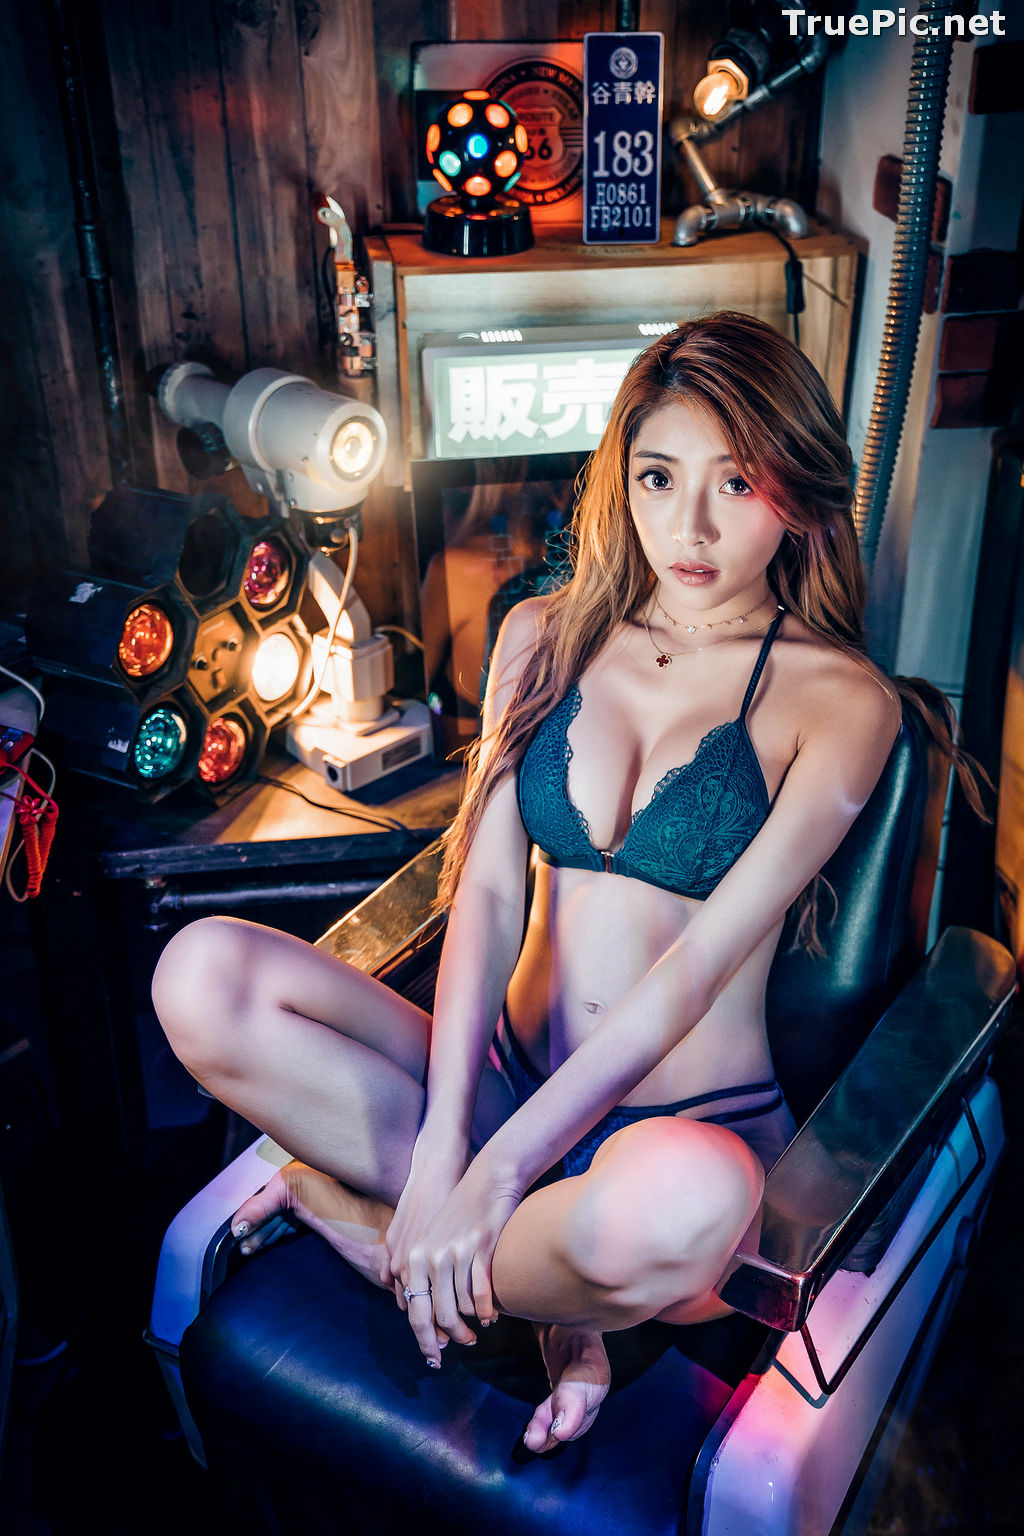 Image Taiwanese Model - 蘿拉Lola - Welcome To My Lingerie Show - TruePic.net - Picture-9